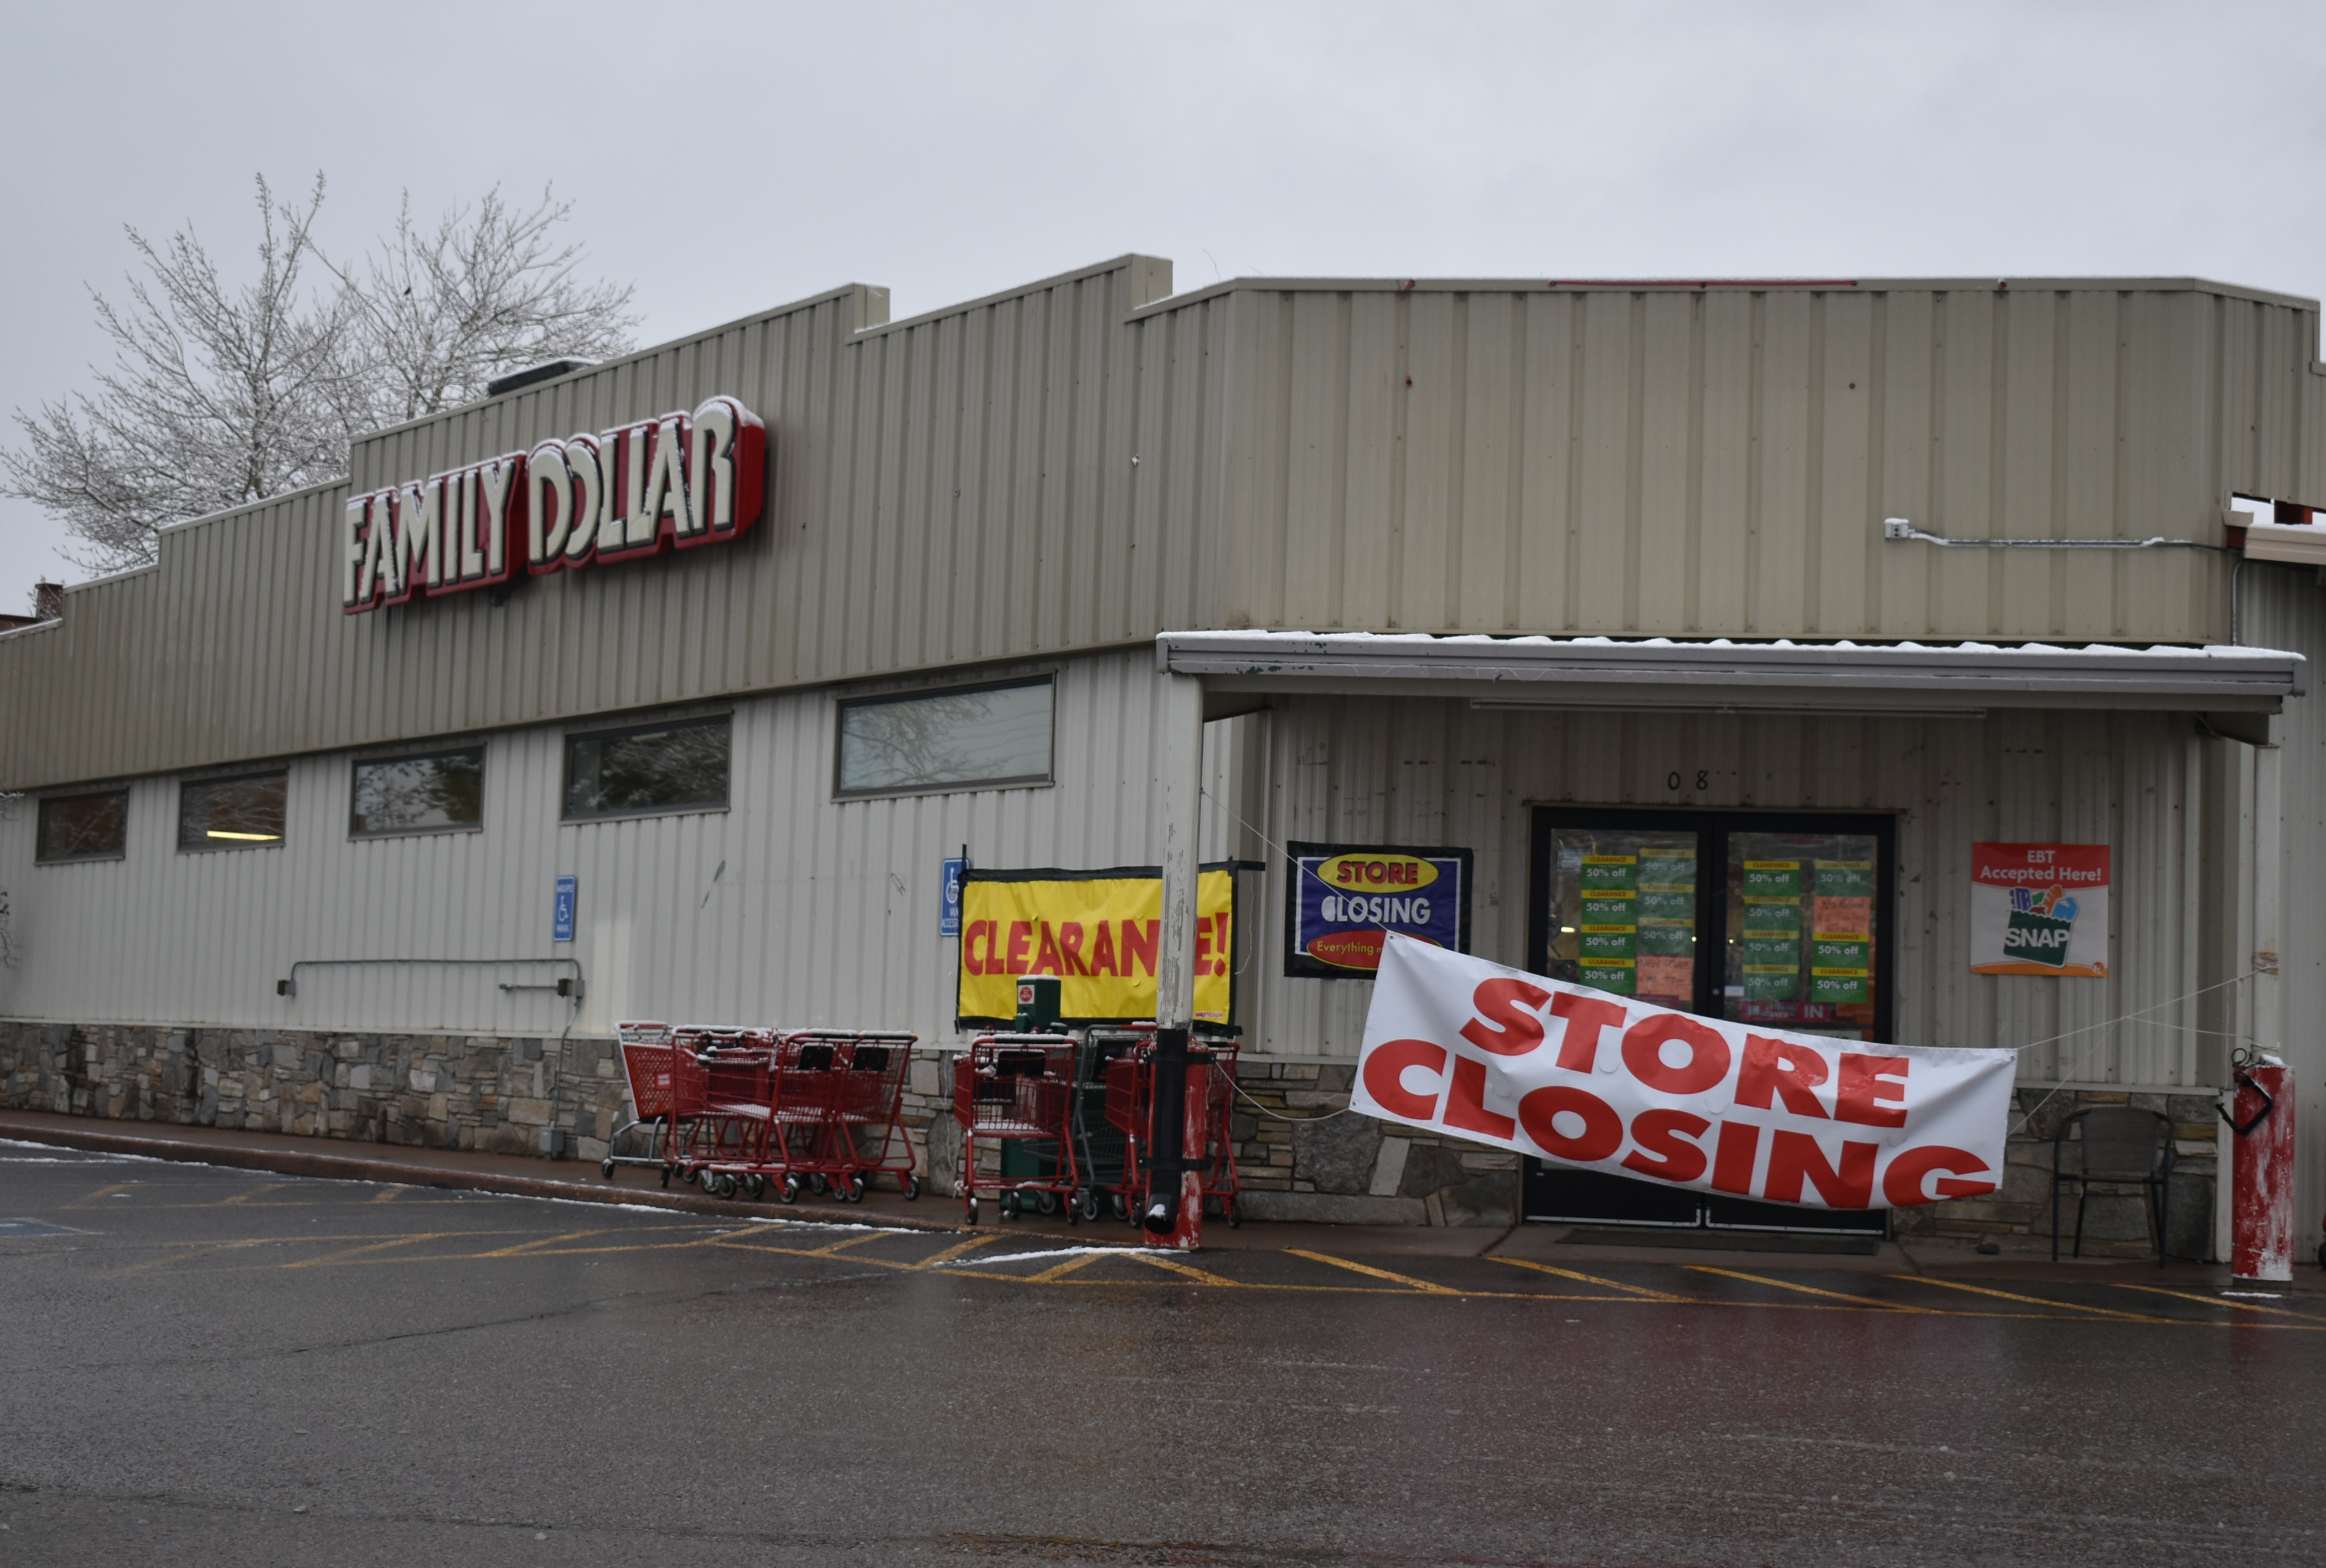 Carbondale Family Dollar is closing to make way for Dollar Tree